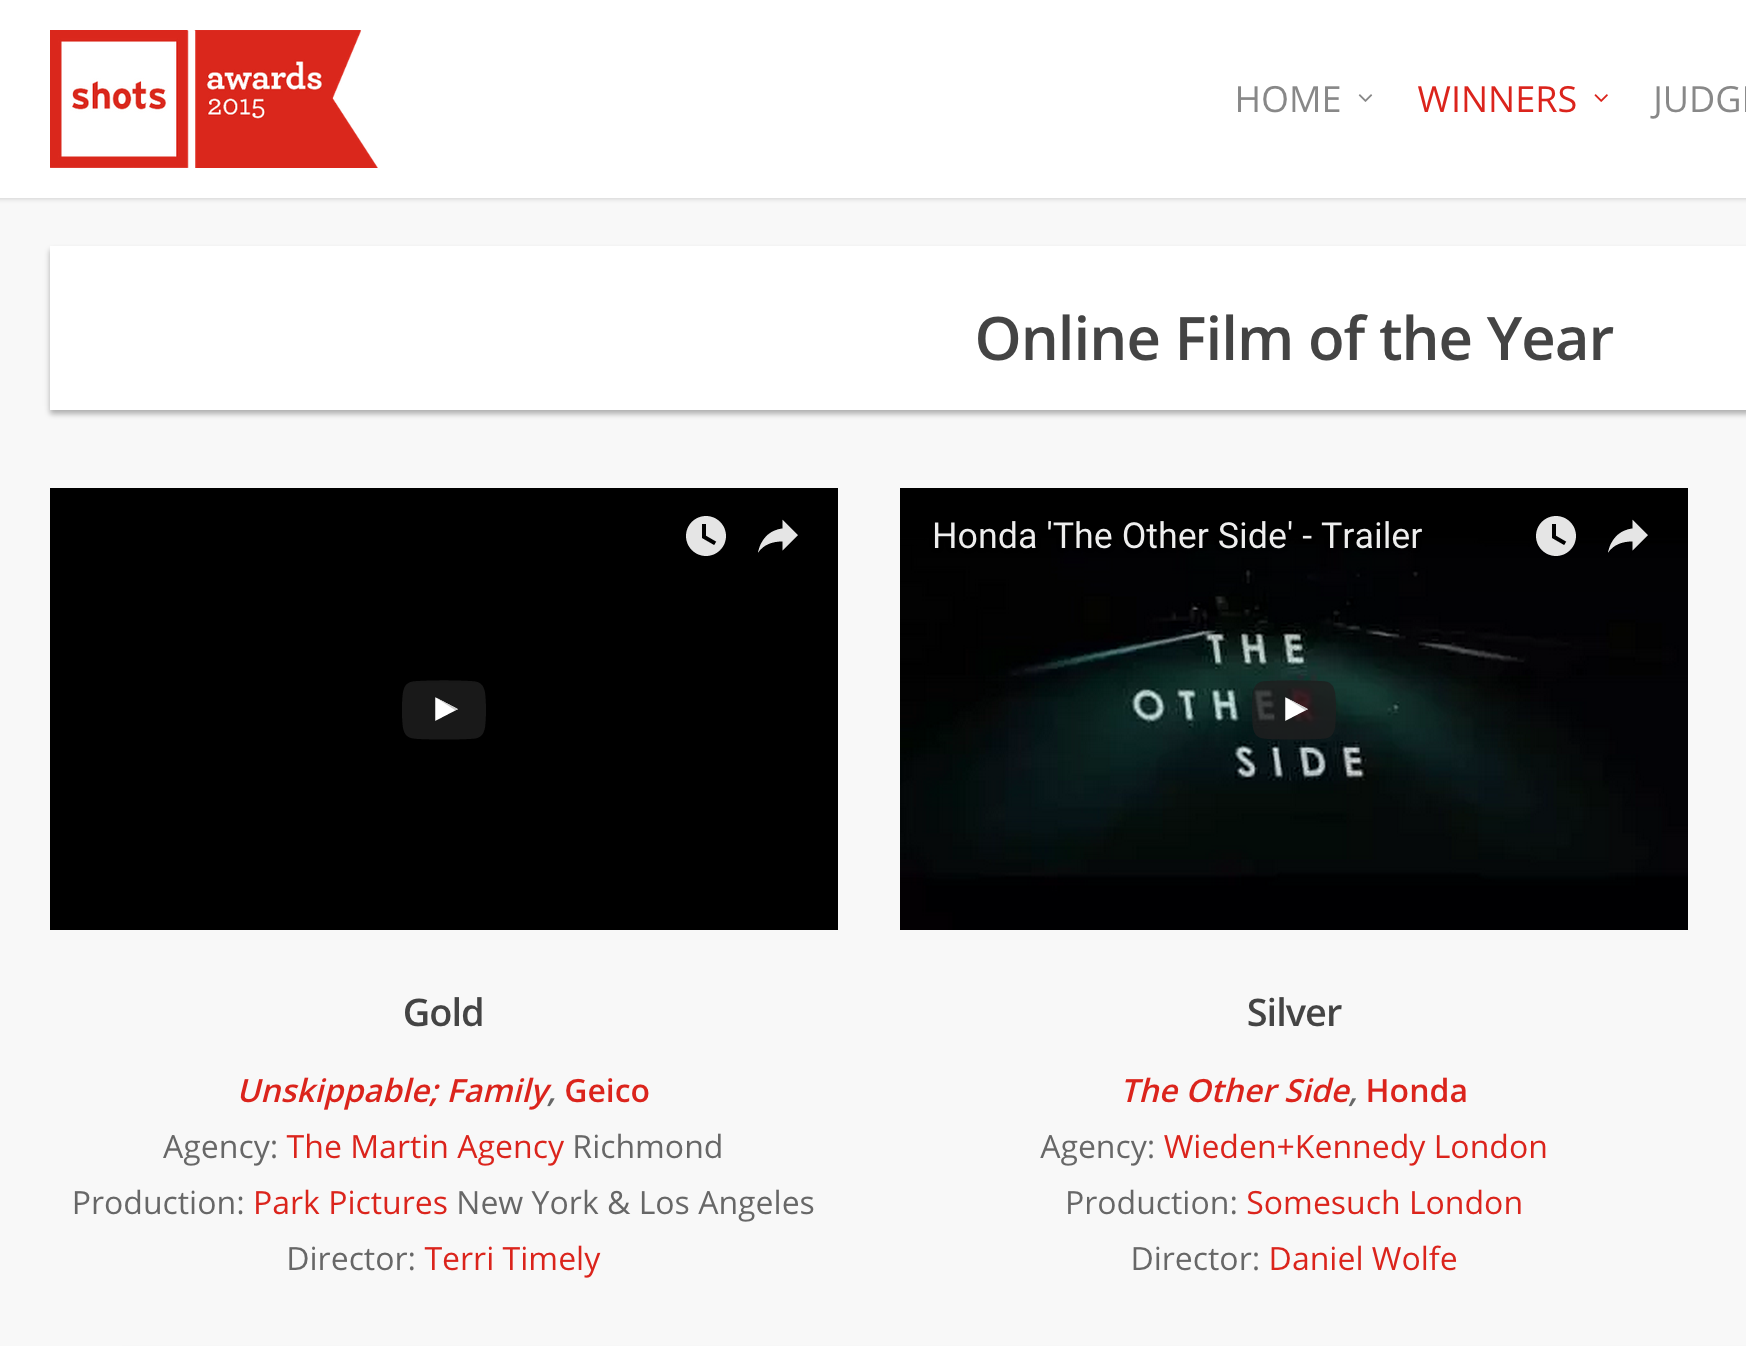 Unskippable is Online Film of the Year